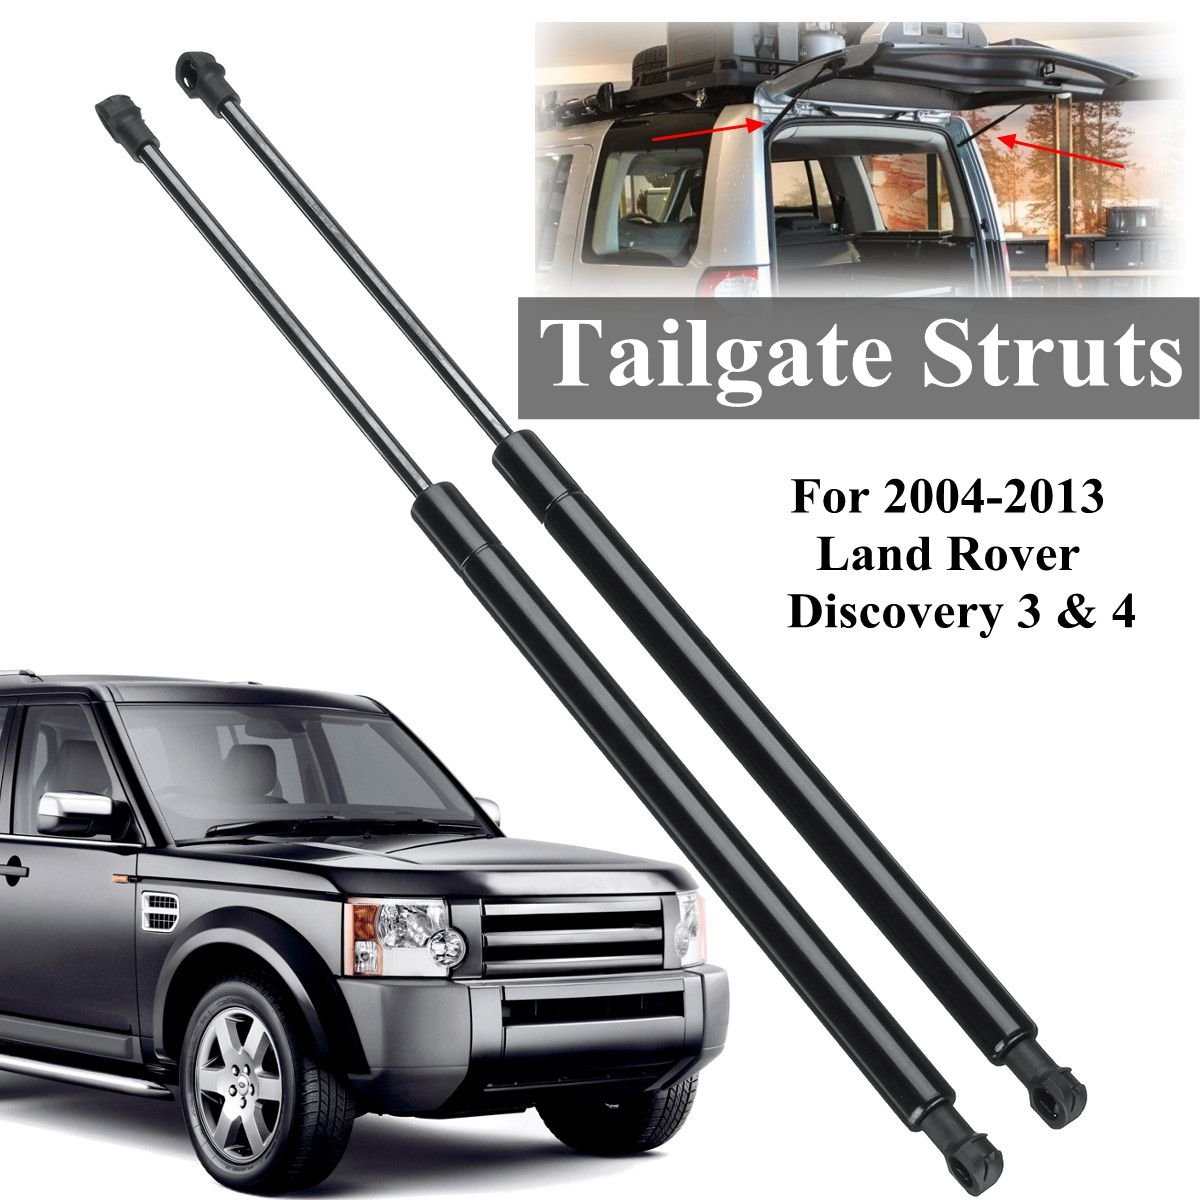 2pcs Rear Tailgate Truck Gas Struts Support For Land Rover Discovery 3&4 2004-2013 BHE780060 велосипед smart truck 2013